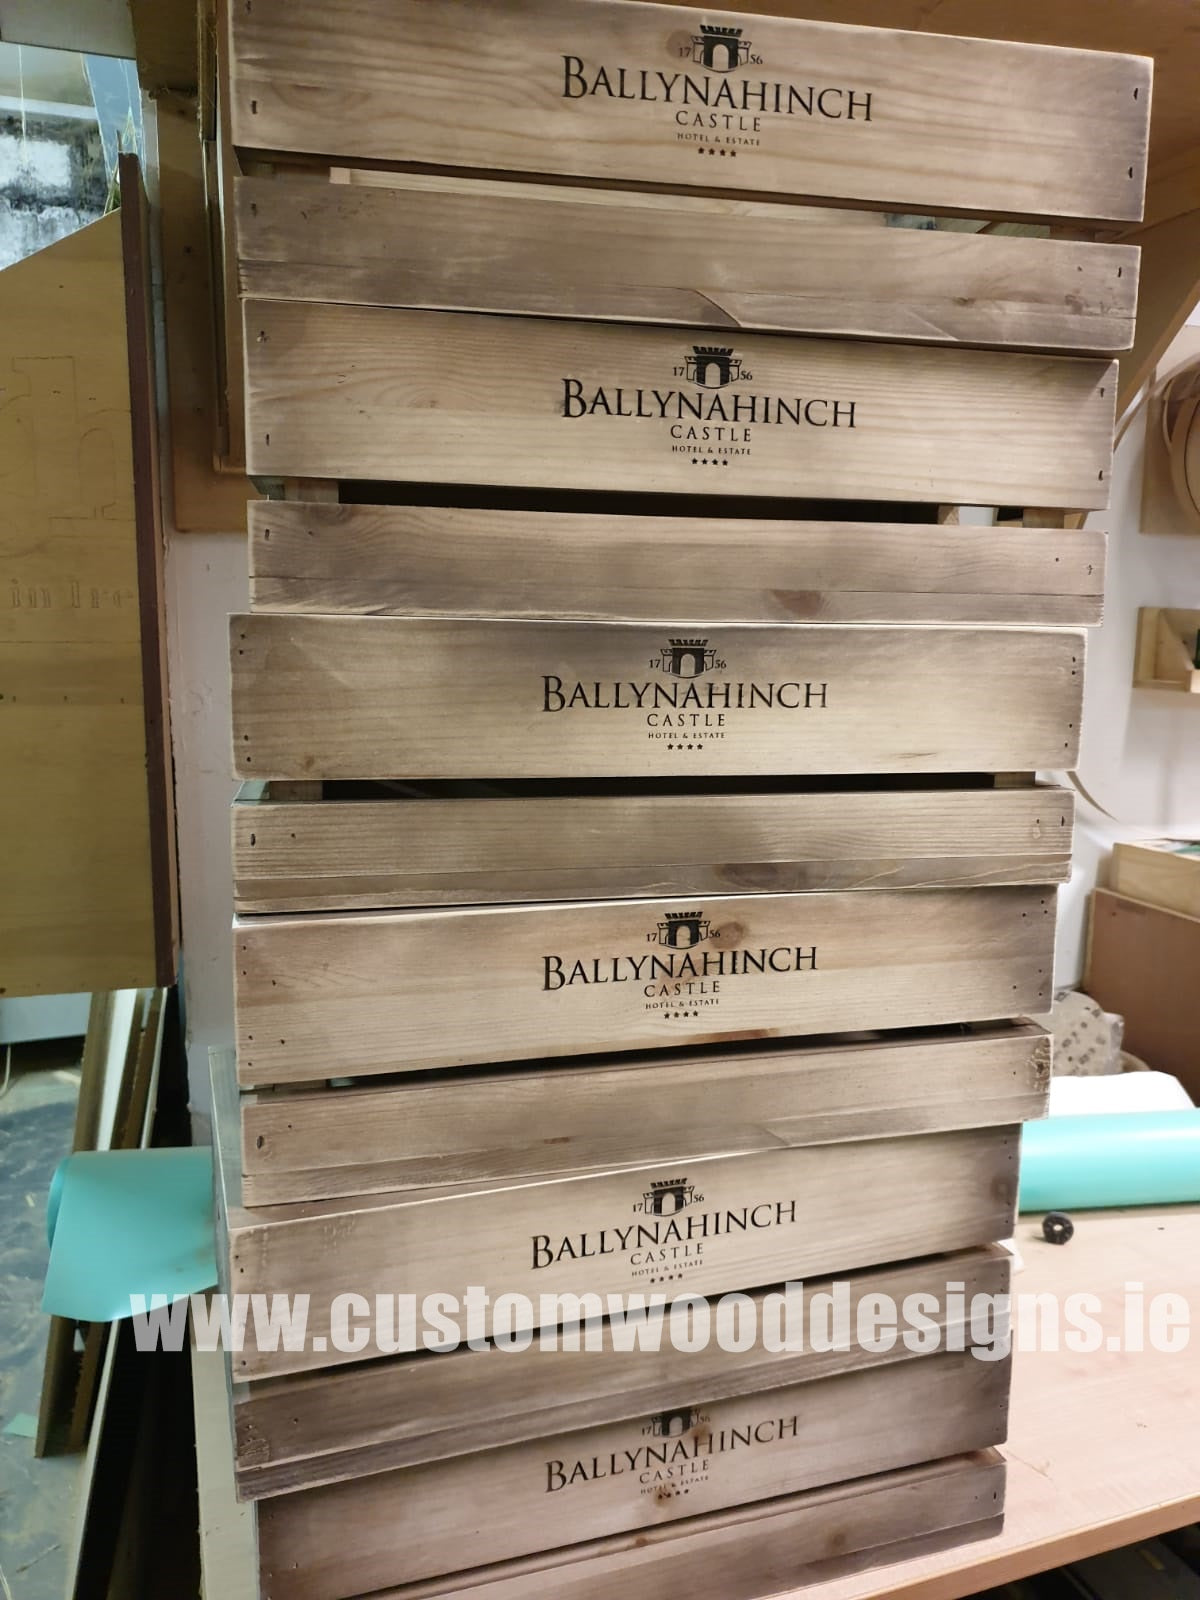 Crates Custom Wood Designs Manufacturer Dublin Ireland wooden timber crates pouint of sale shoip retail display branded crates retail shop hotel product display custom wood designs laser engraving mass production